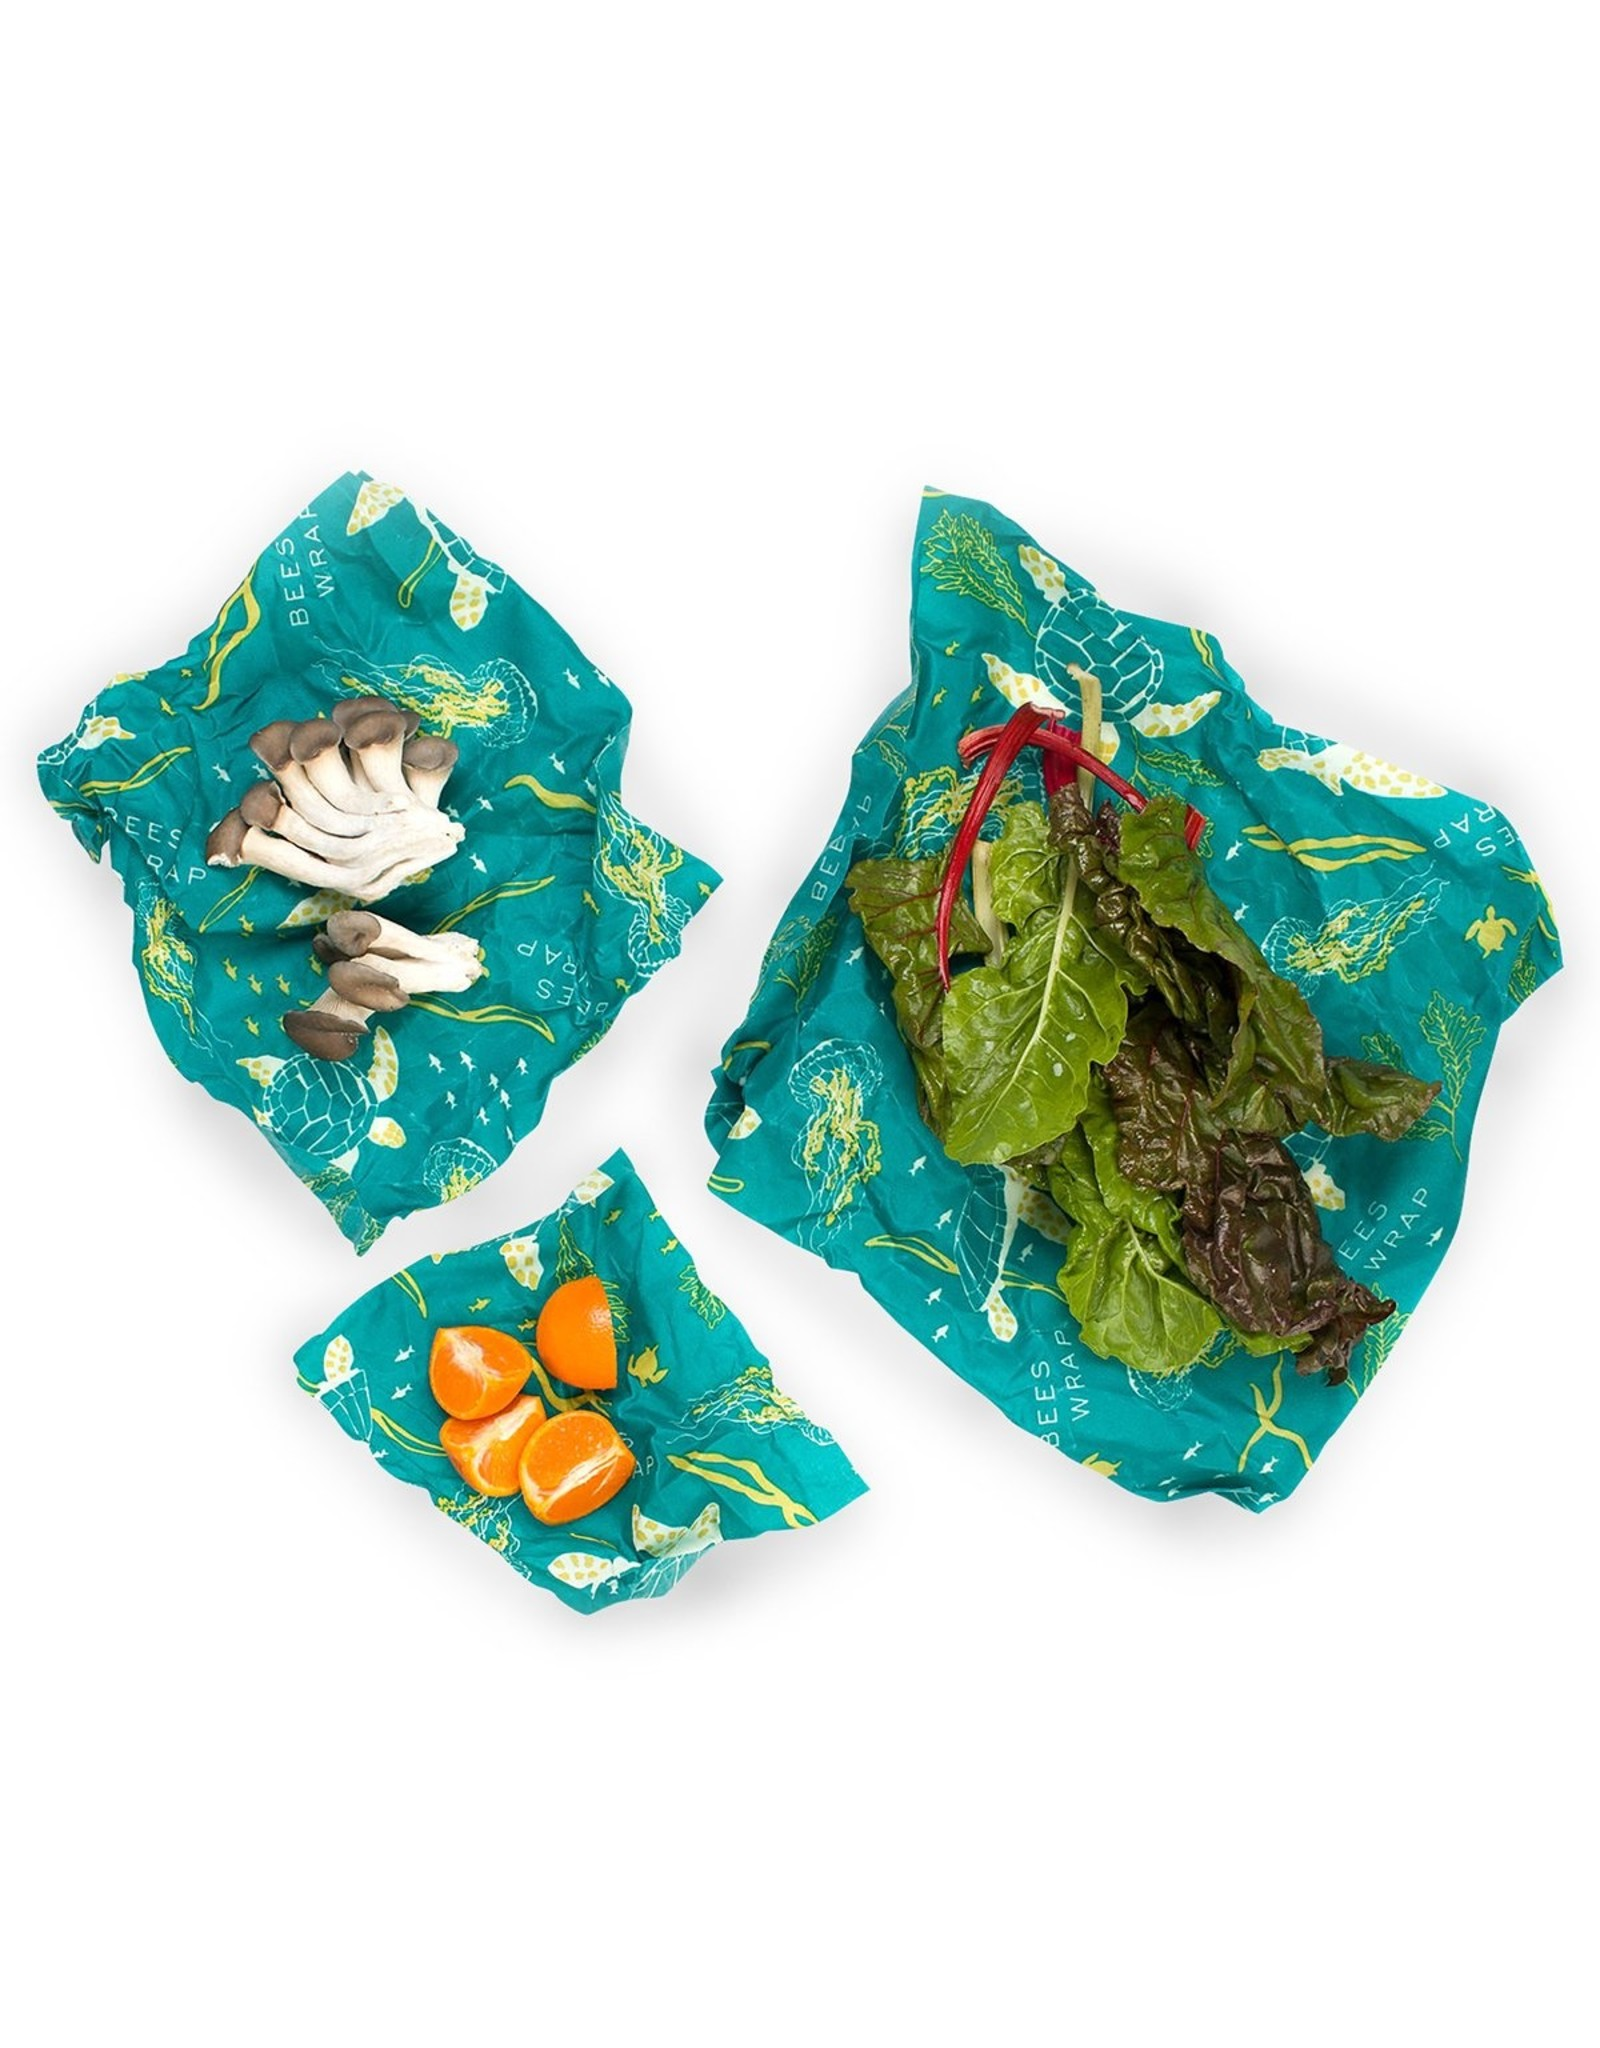 Bees Wrap 3 Pack Assorted Wraps - Oceans Print